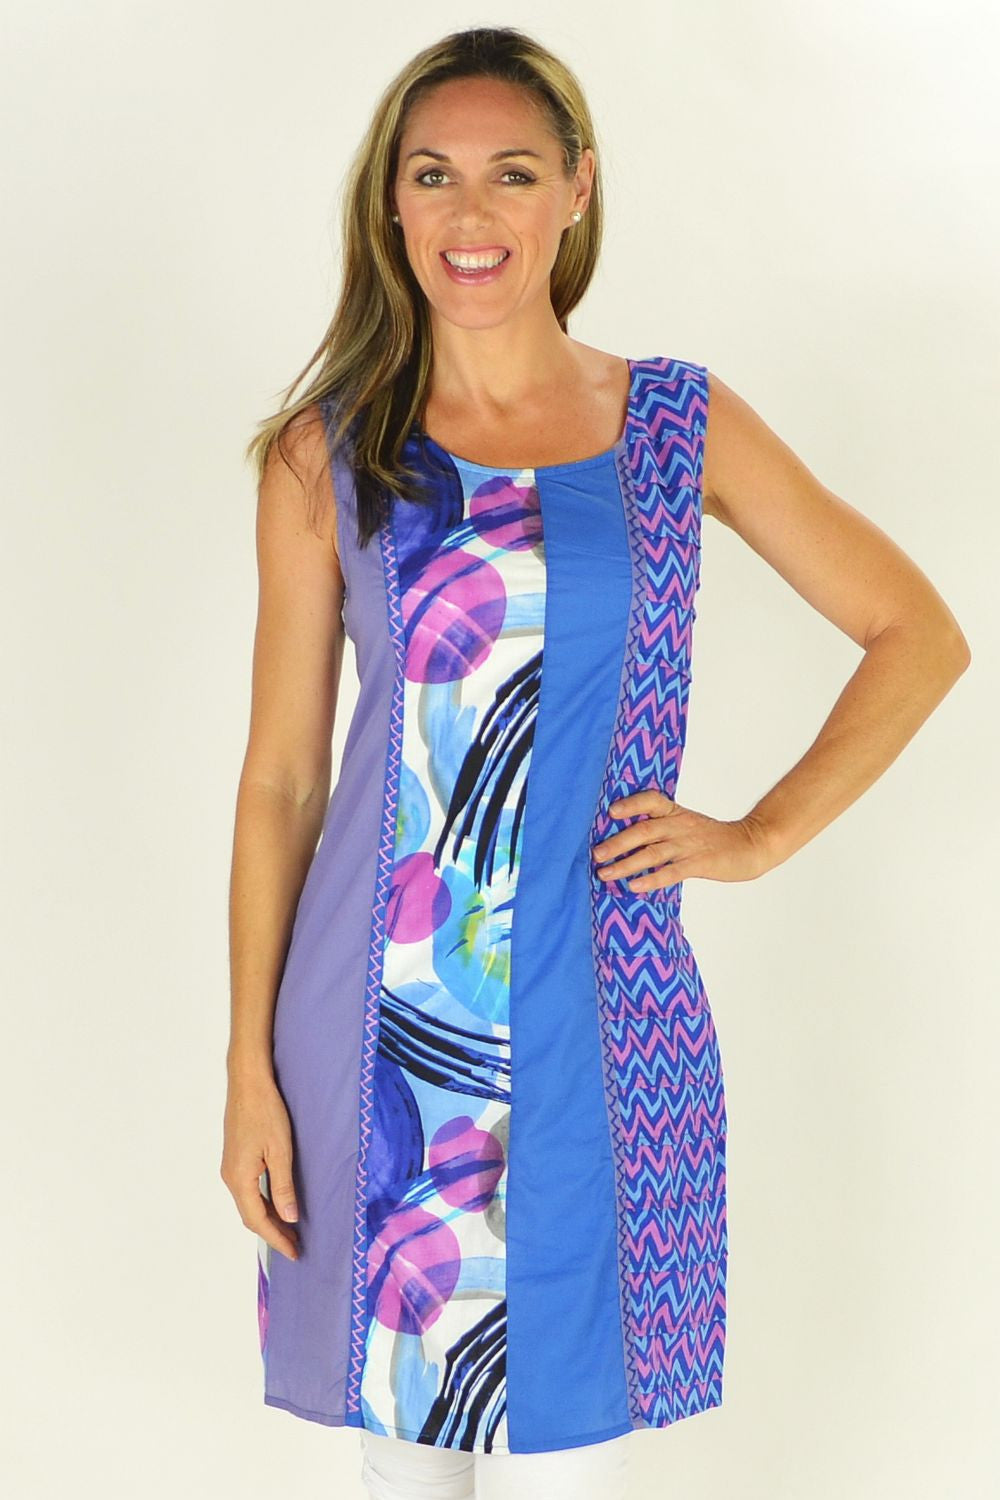 Glorias Tunic - at I Love Tunics @ www.ilovetunics.com = Number One! Tunics Destination